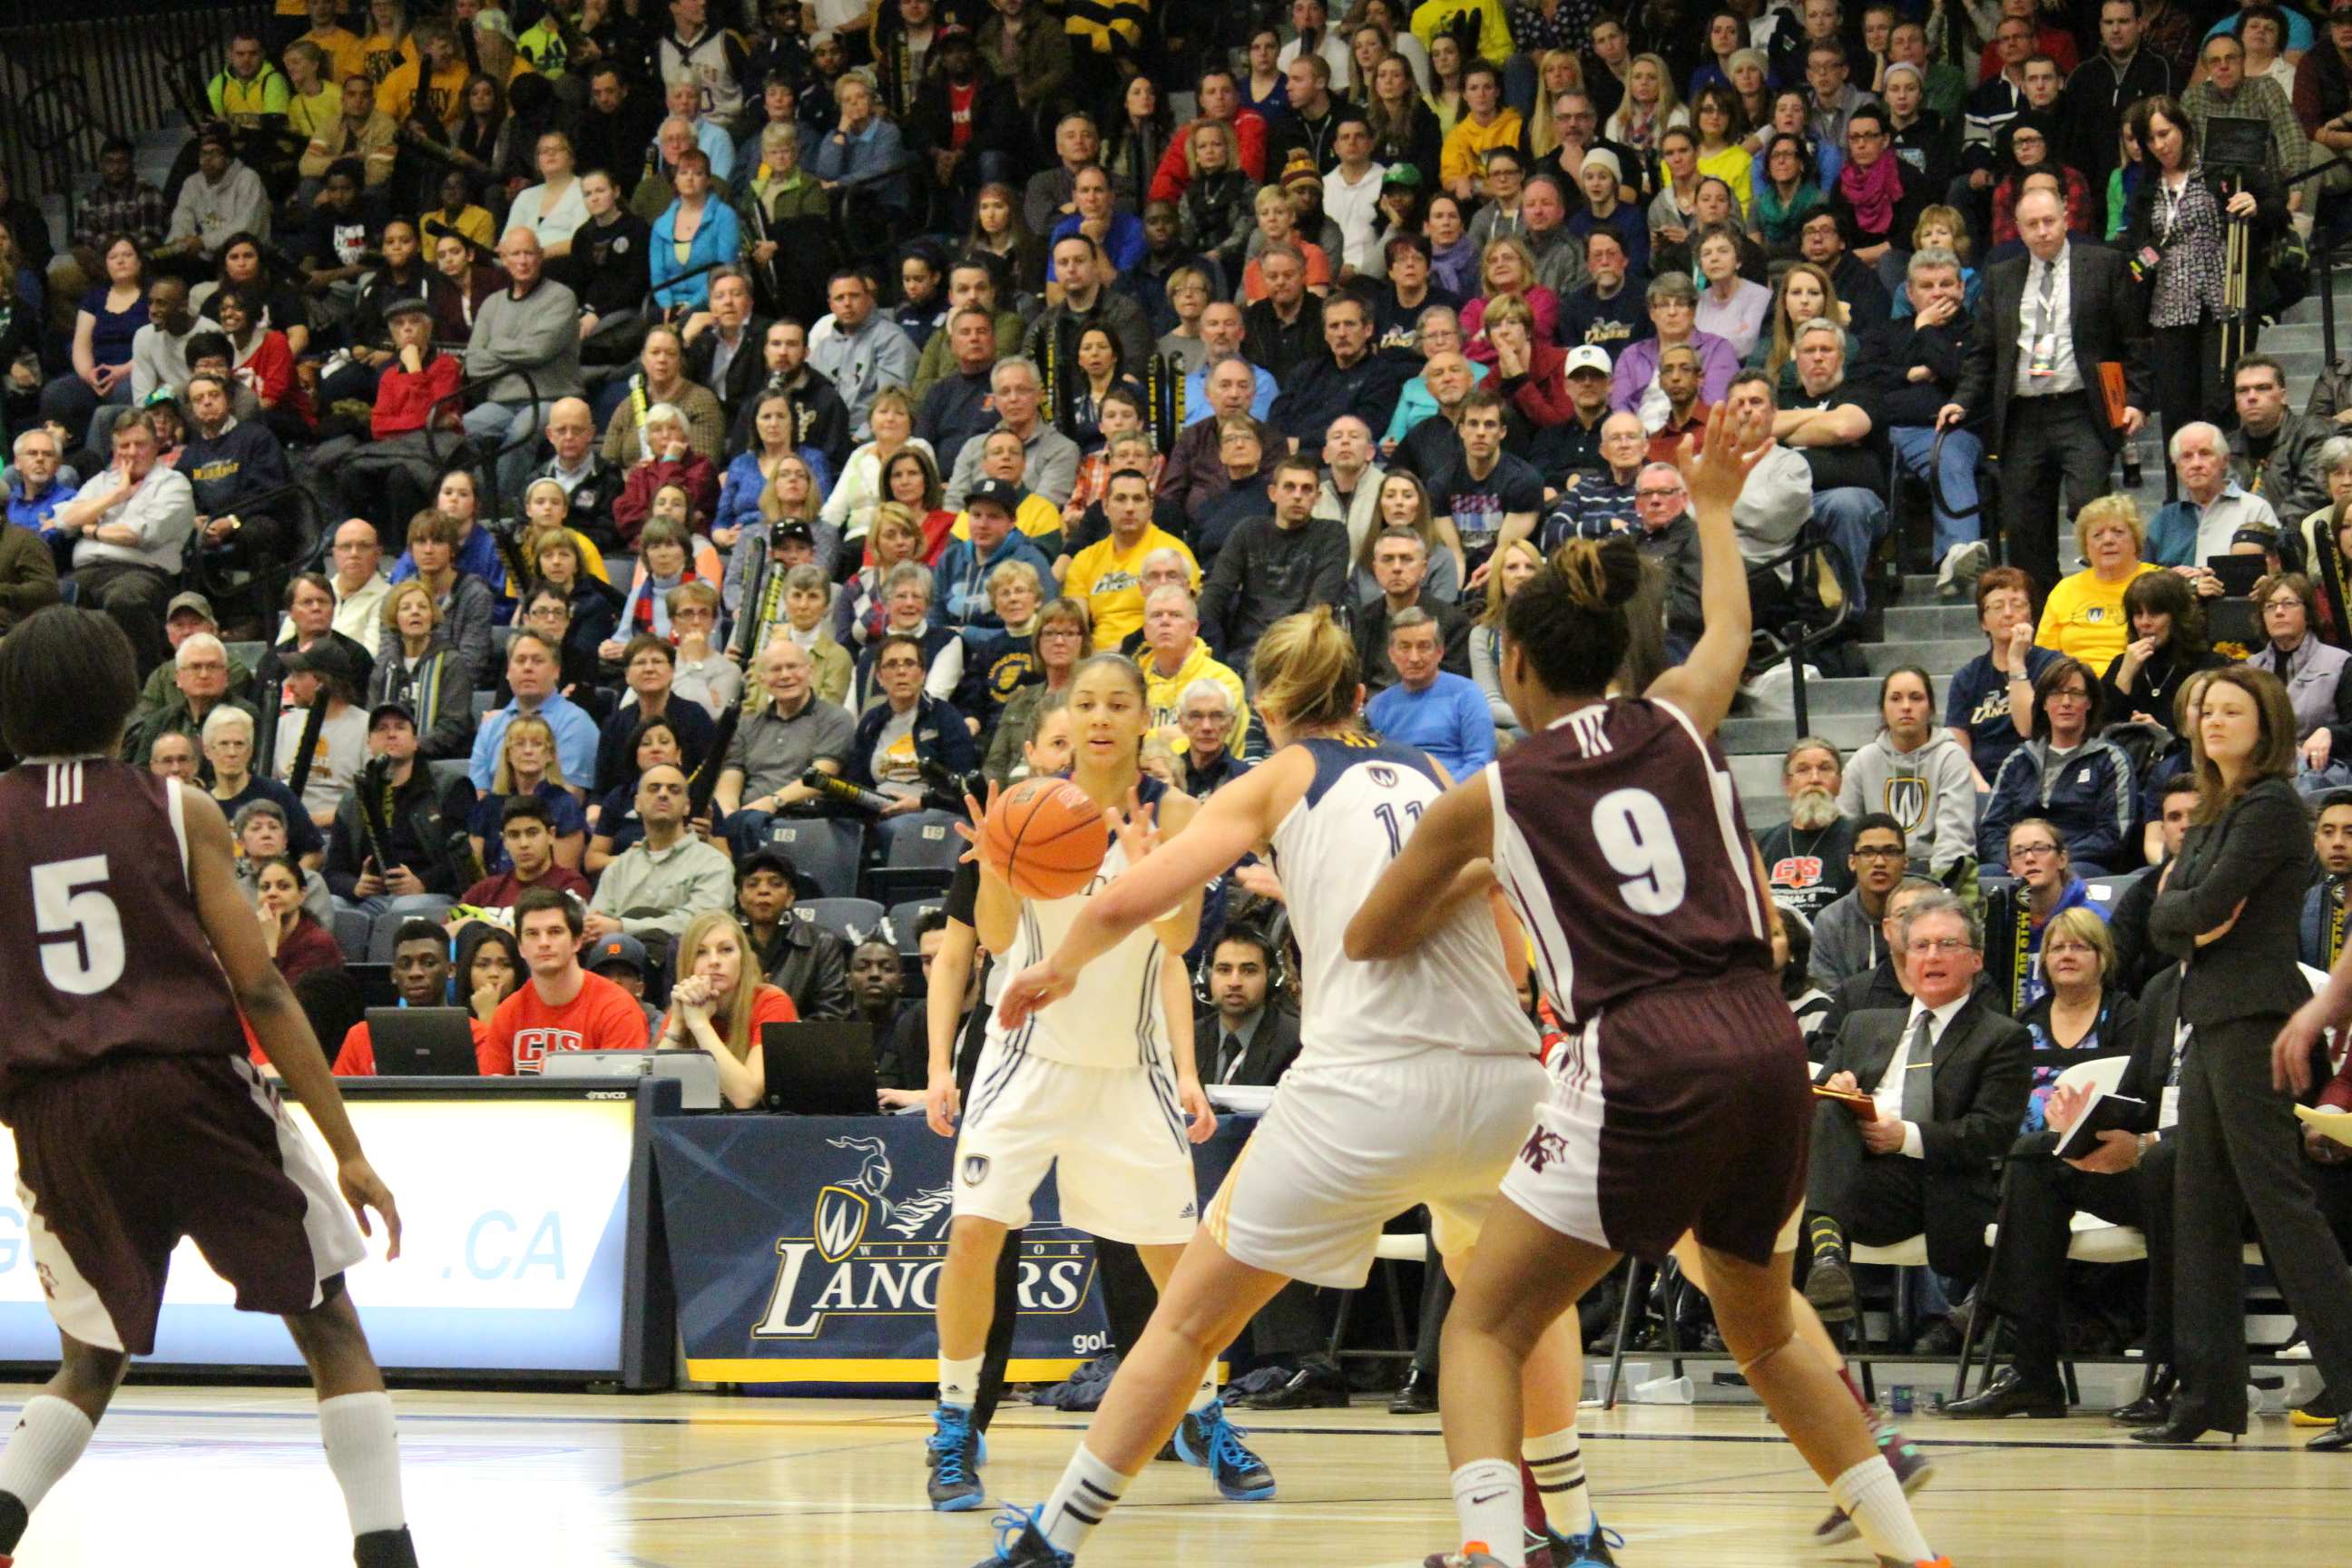 The Windsor Lancers women's basketball team captured its fourth consecutive CIS championship at the St. Denis Centre on March 16, 2014. (Ricardo Veneza)